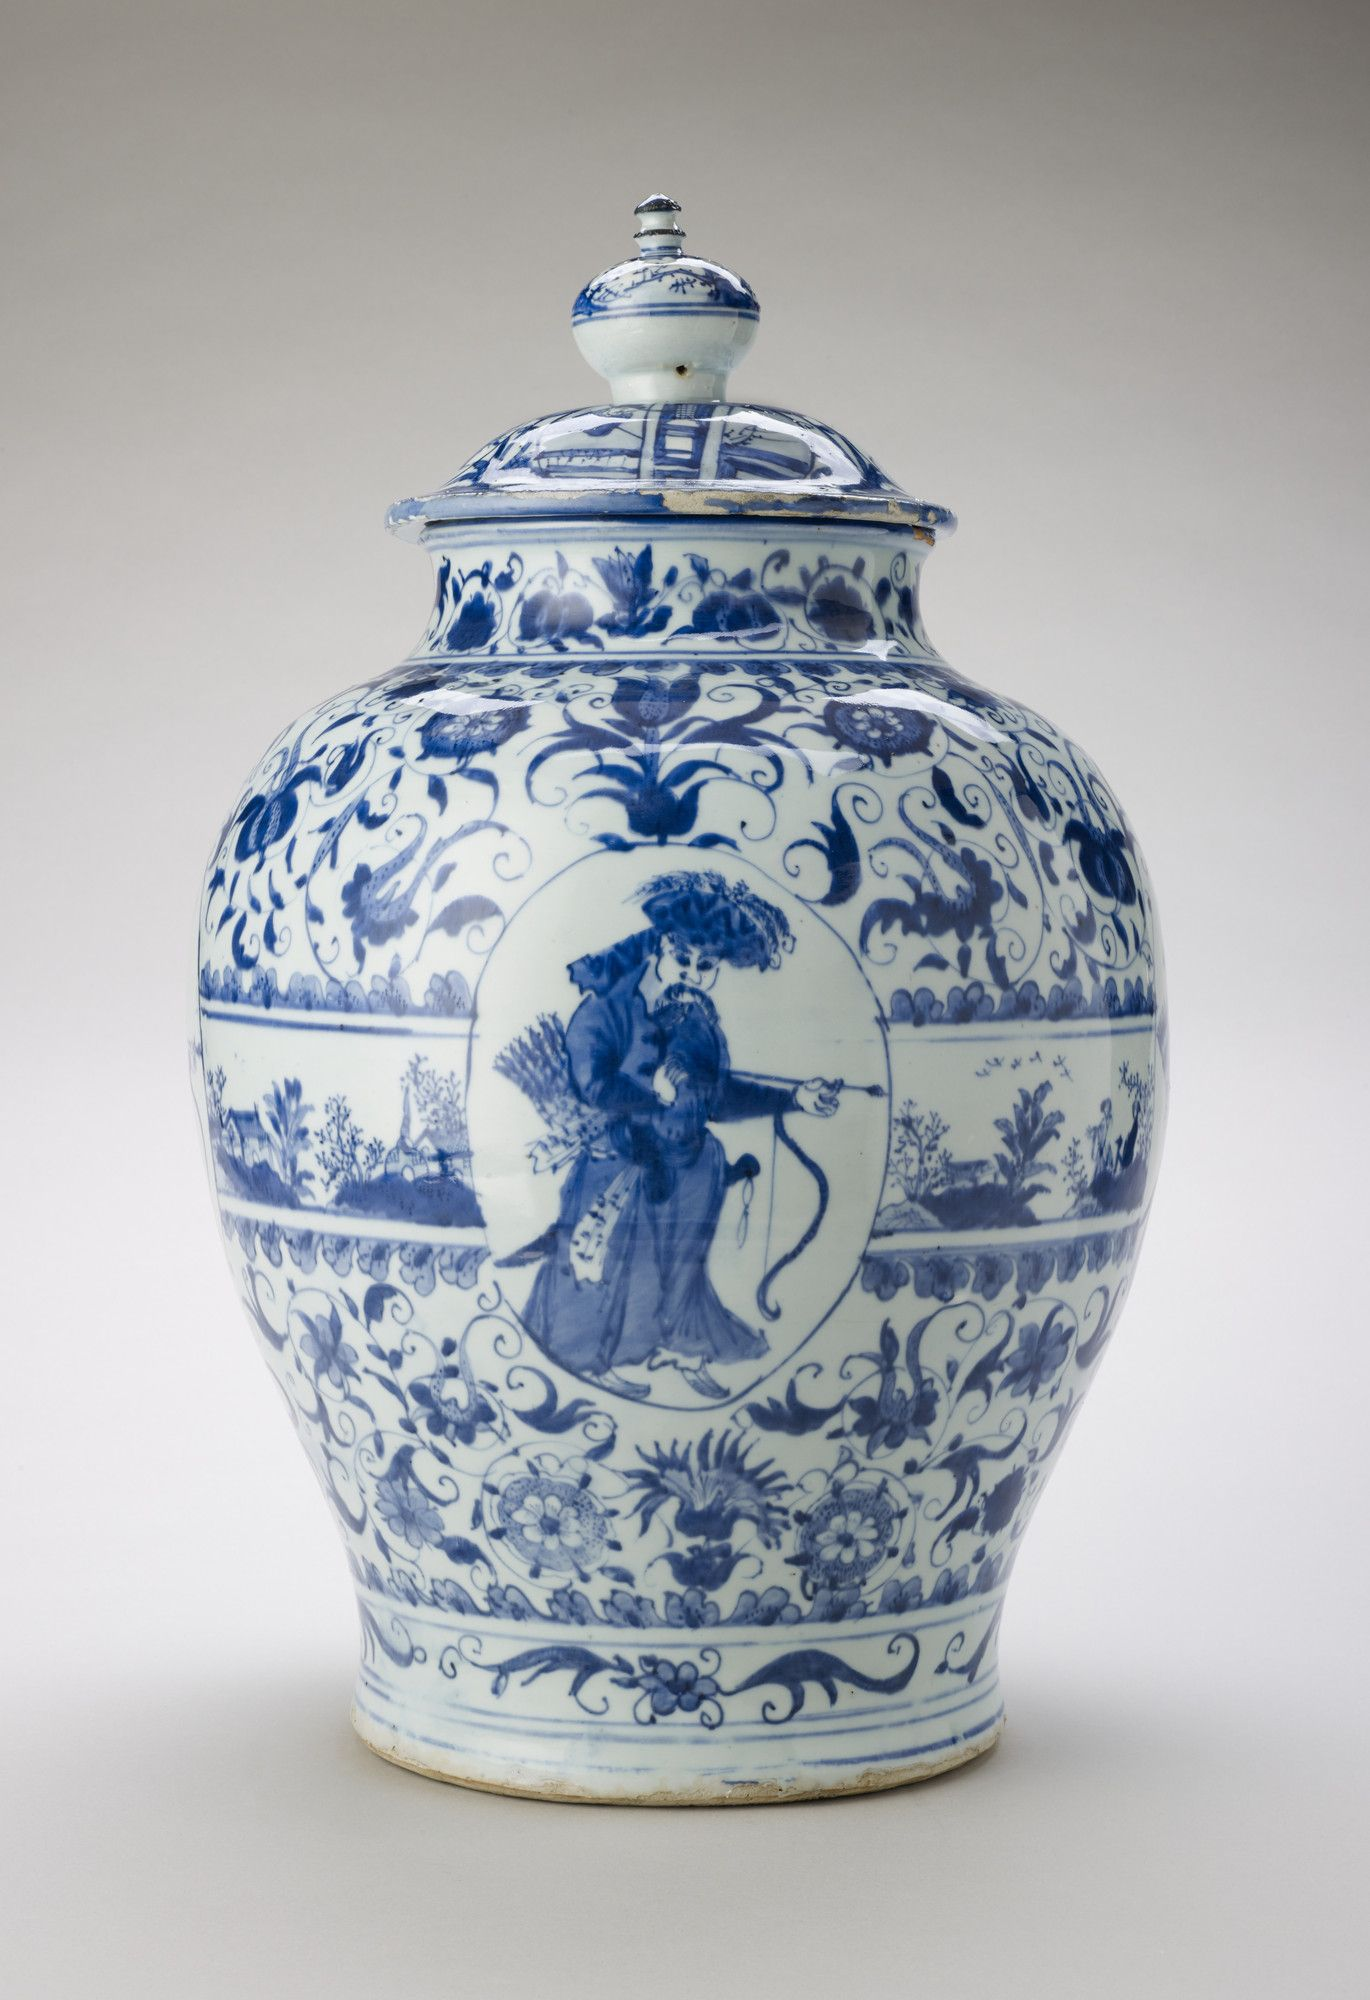 Jar and cover China, Ming Porcelain painted in underglaze blue, H